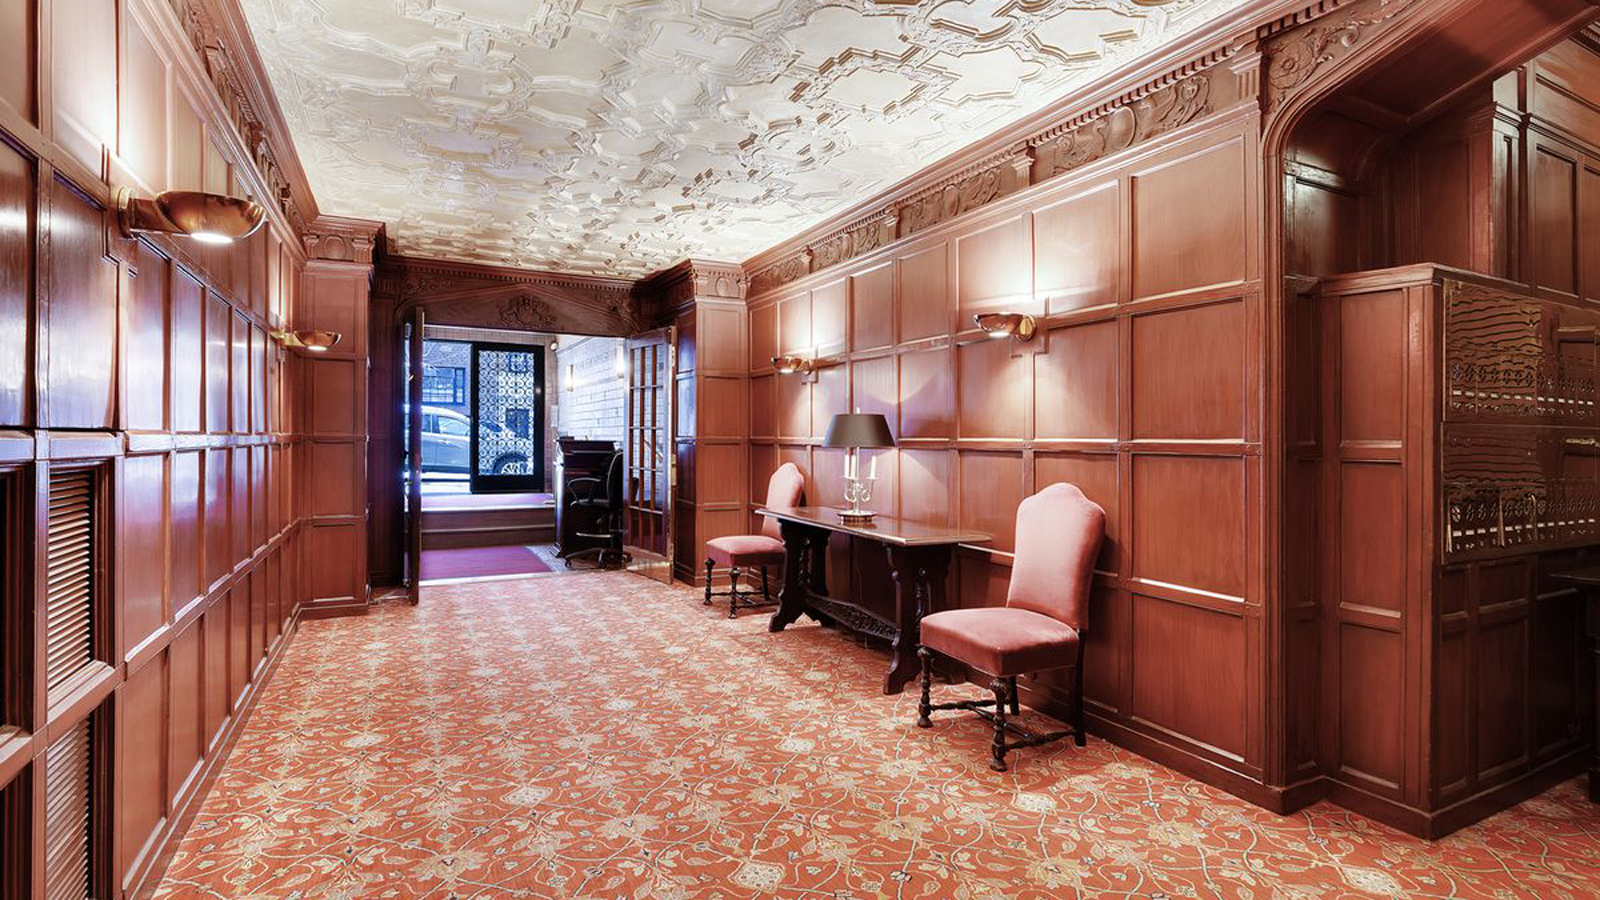 The Manchester, 145 West 79th Street